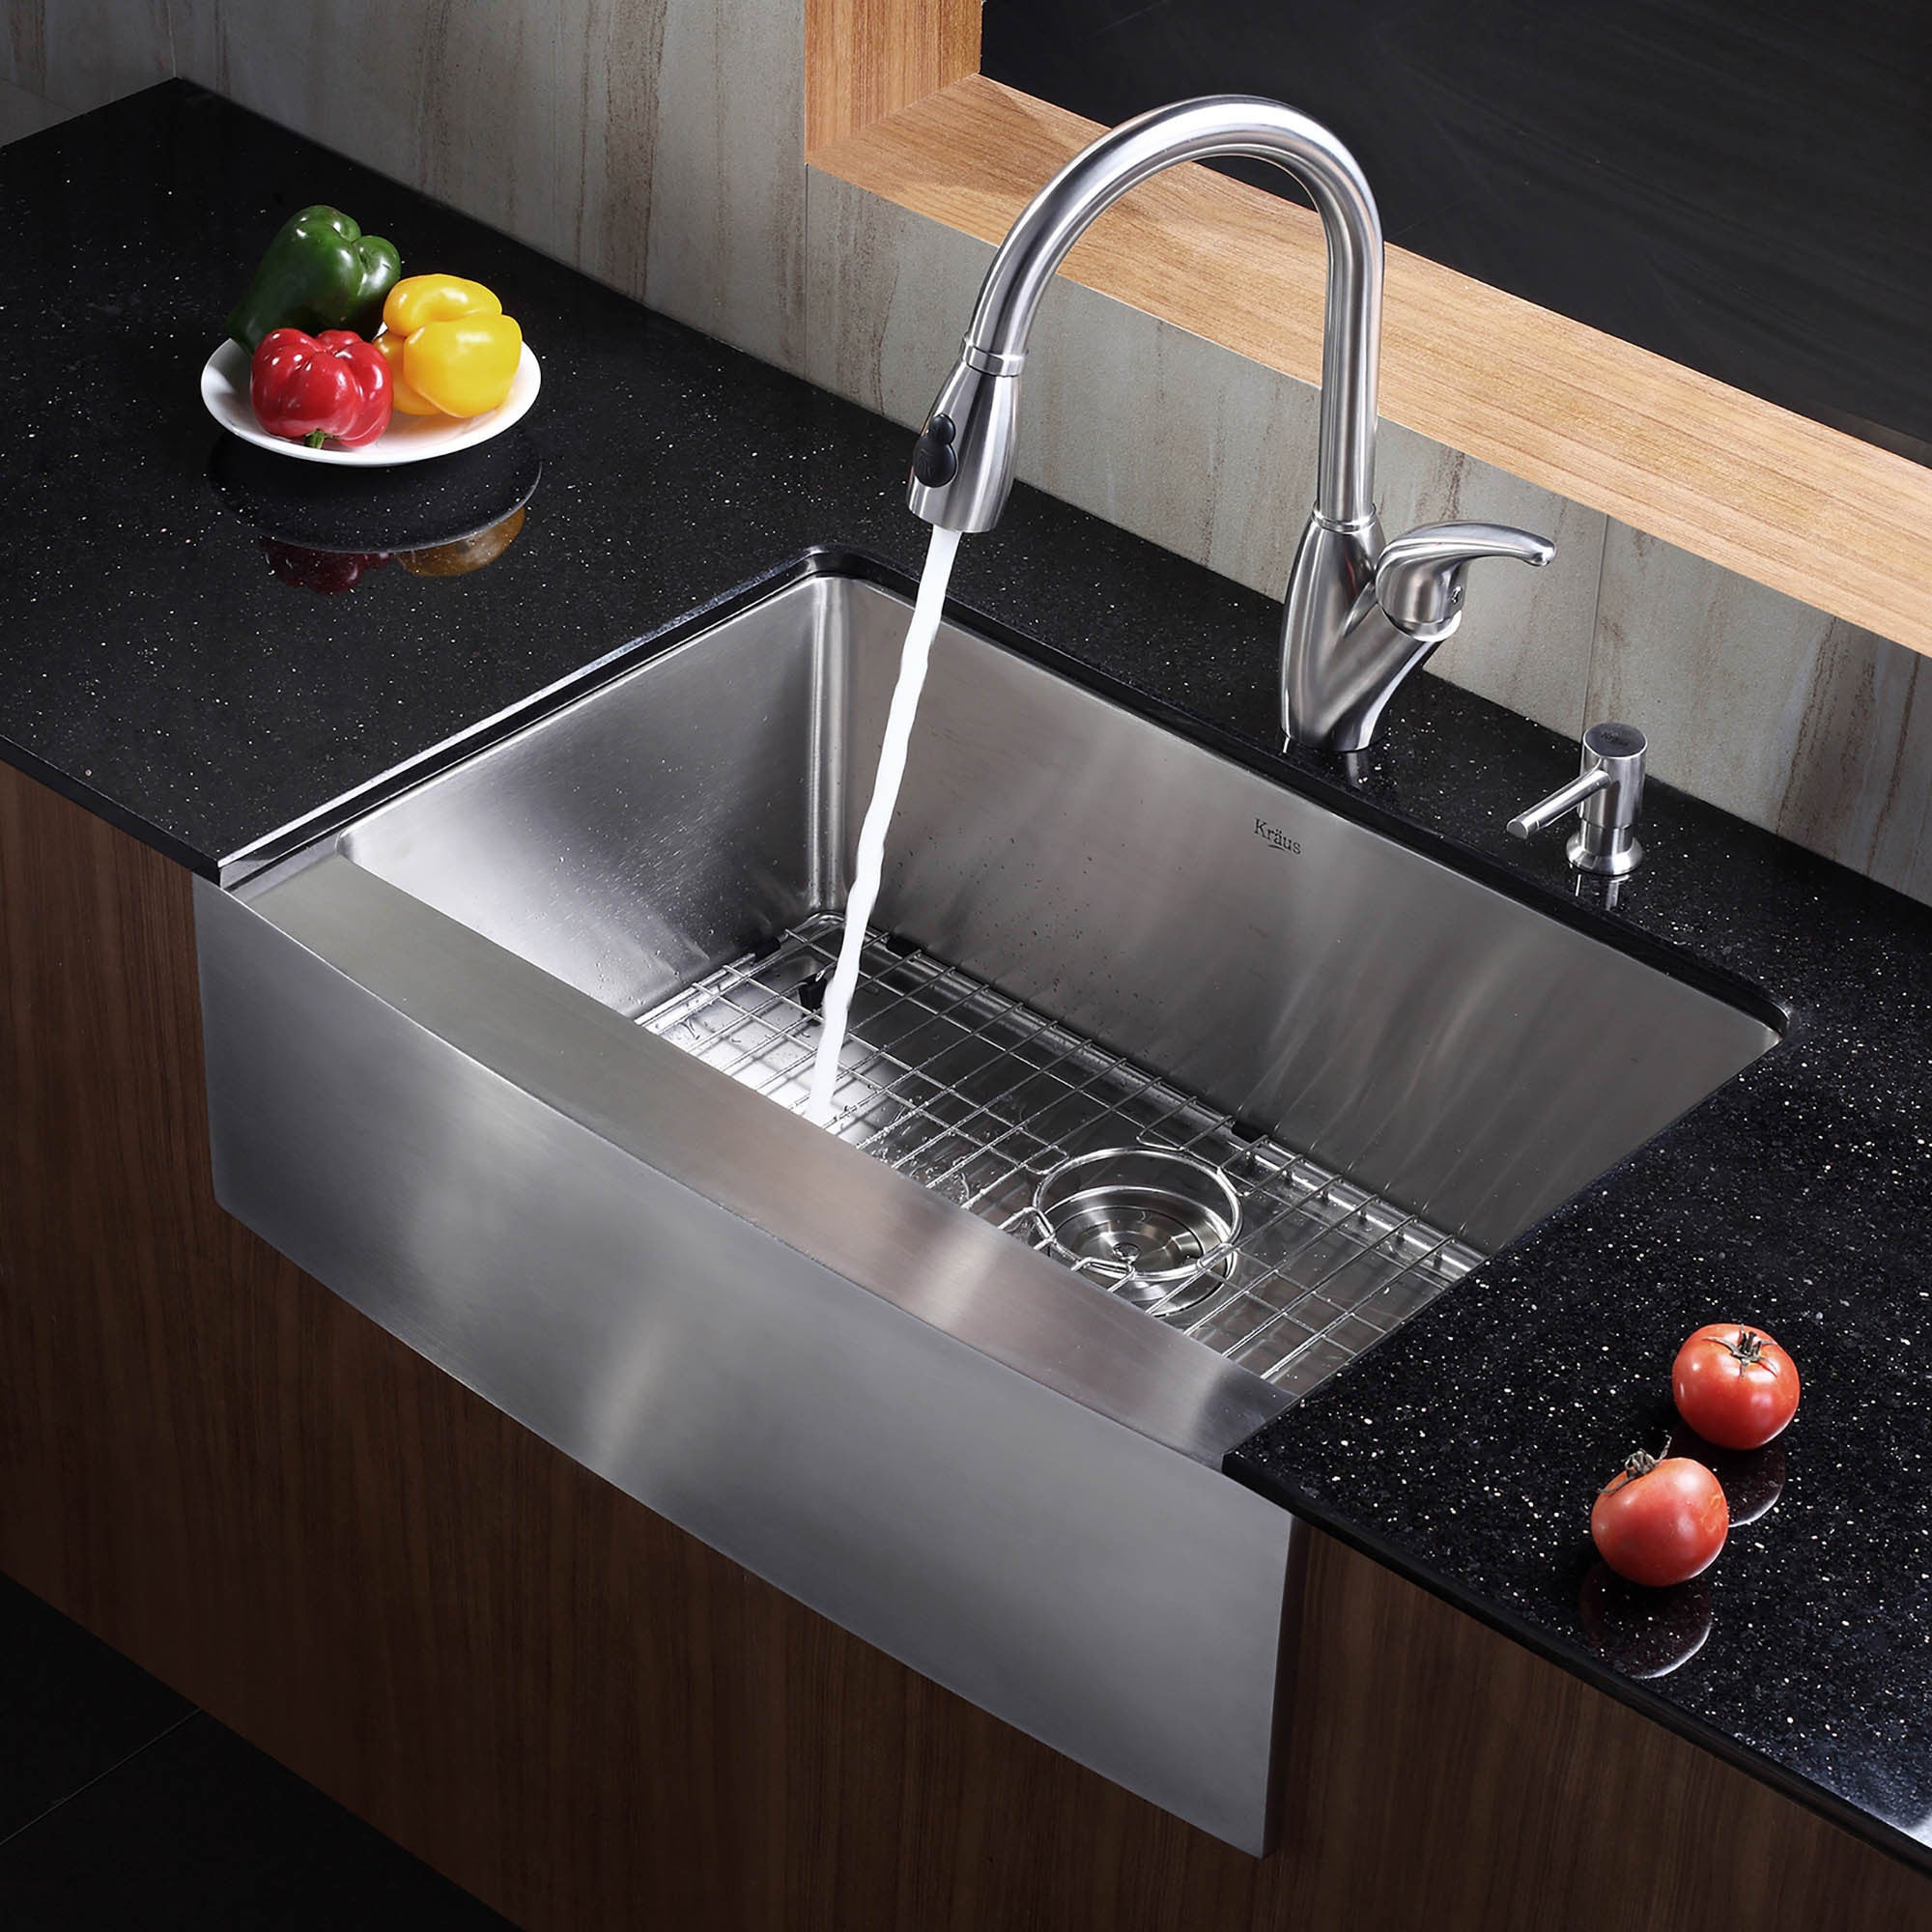 Shop kraus khf200 30 farmhouse apron front 30 in 16g 1 bowl satin stainless steel kitchen sink grid strainer towel on sale free shipping today